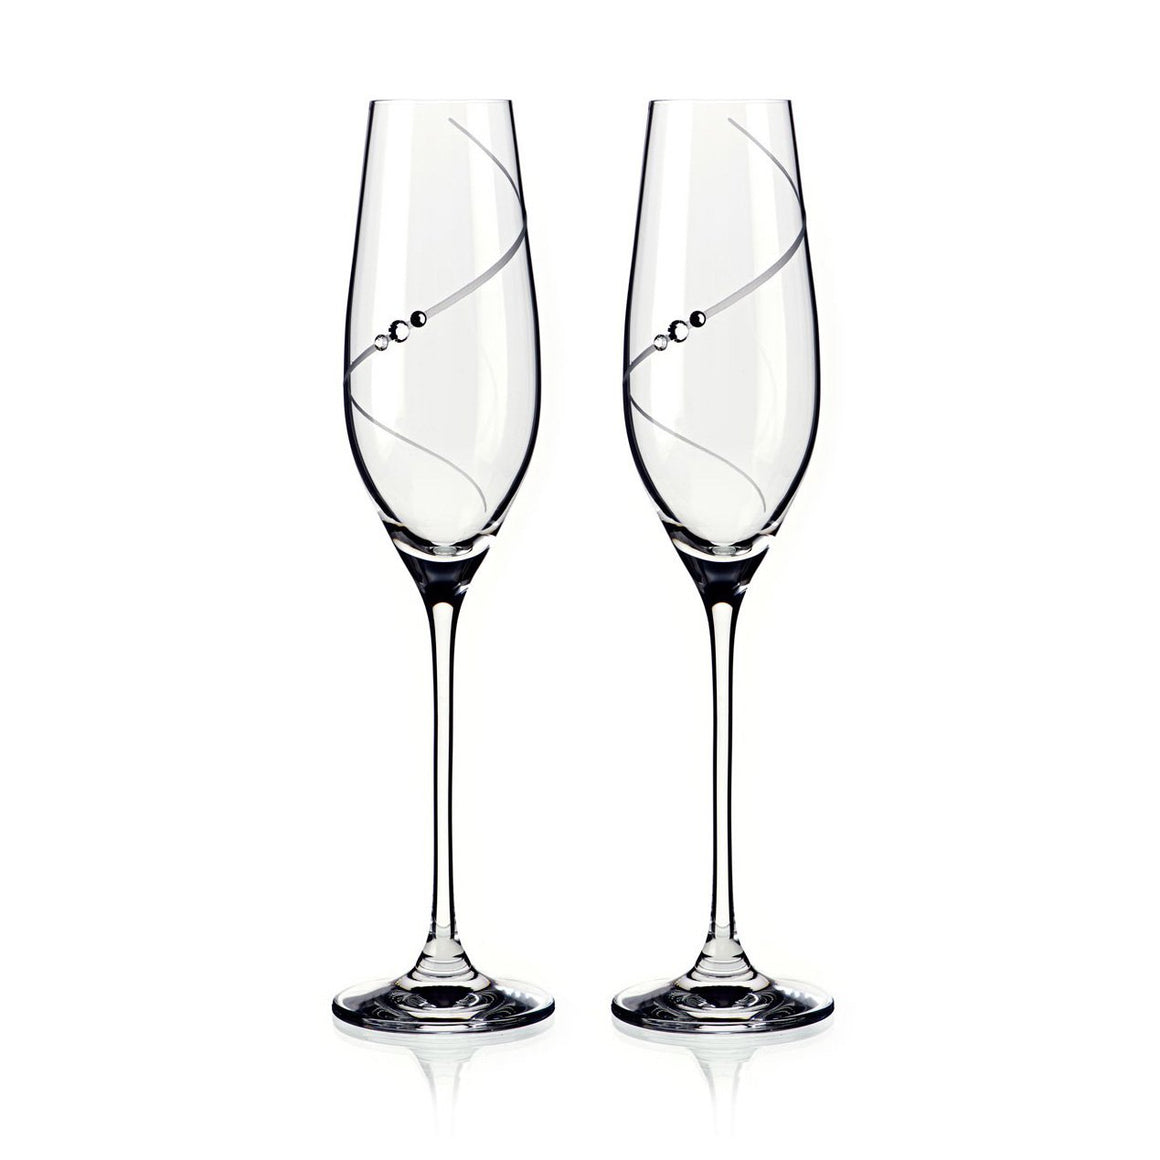 Champagne Glasses - Swarovski Crystals Line Champagne Glasses, Pair